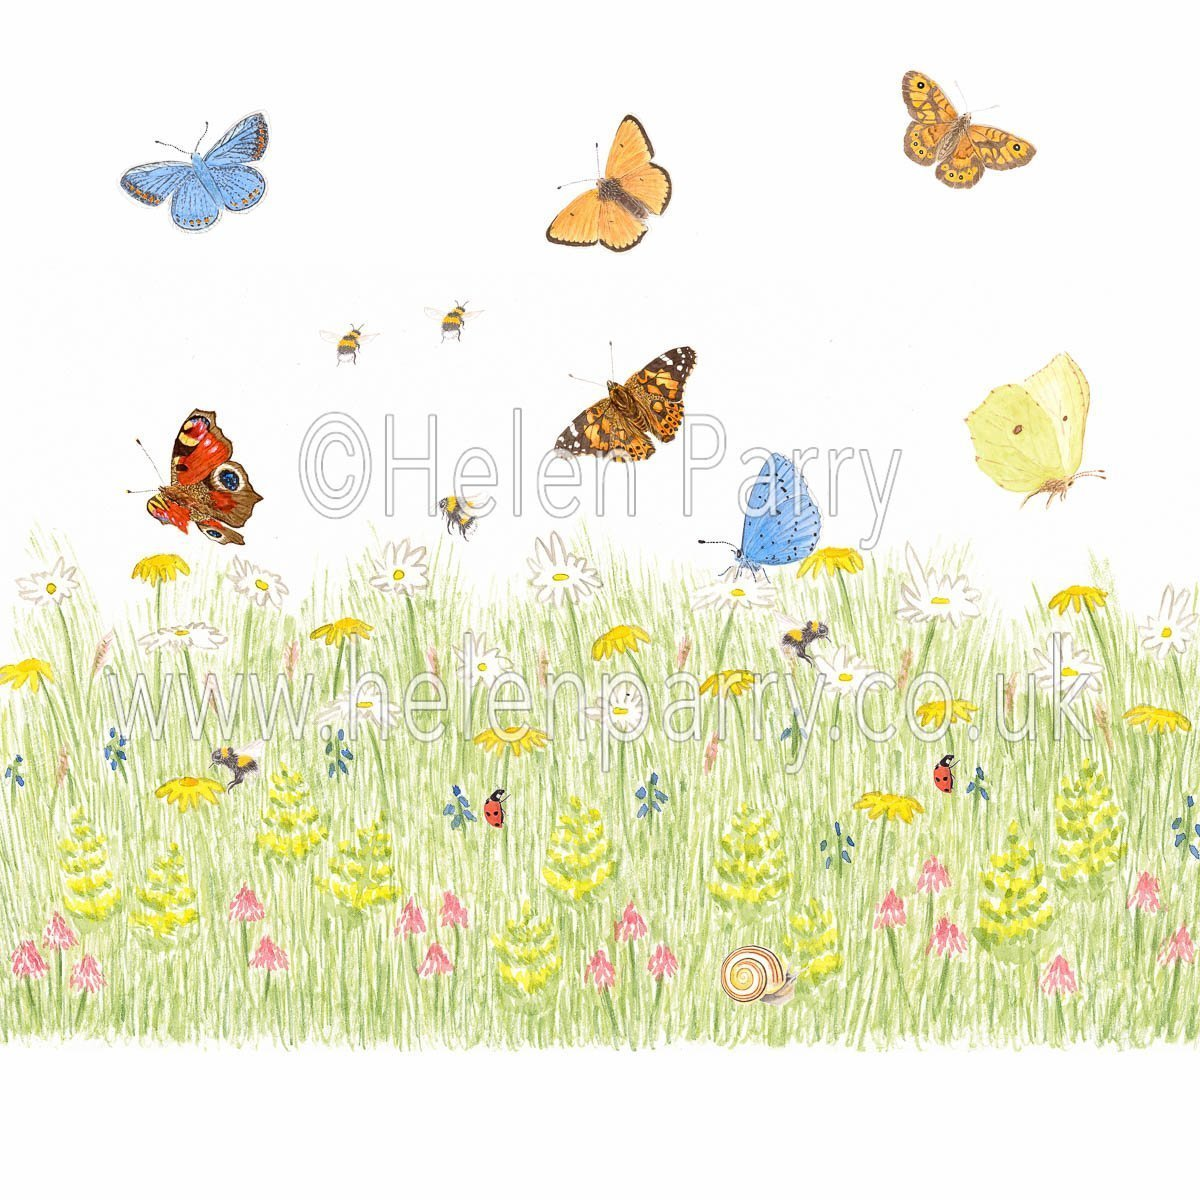 greeting card Daisy meadow with yellow bedstraw orchids and butterflies bees